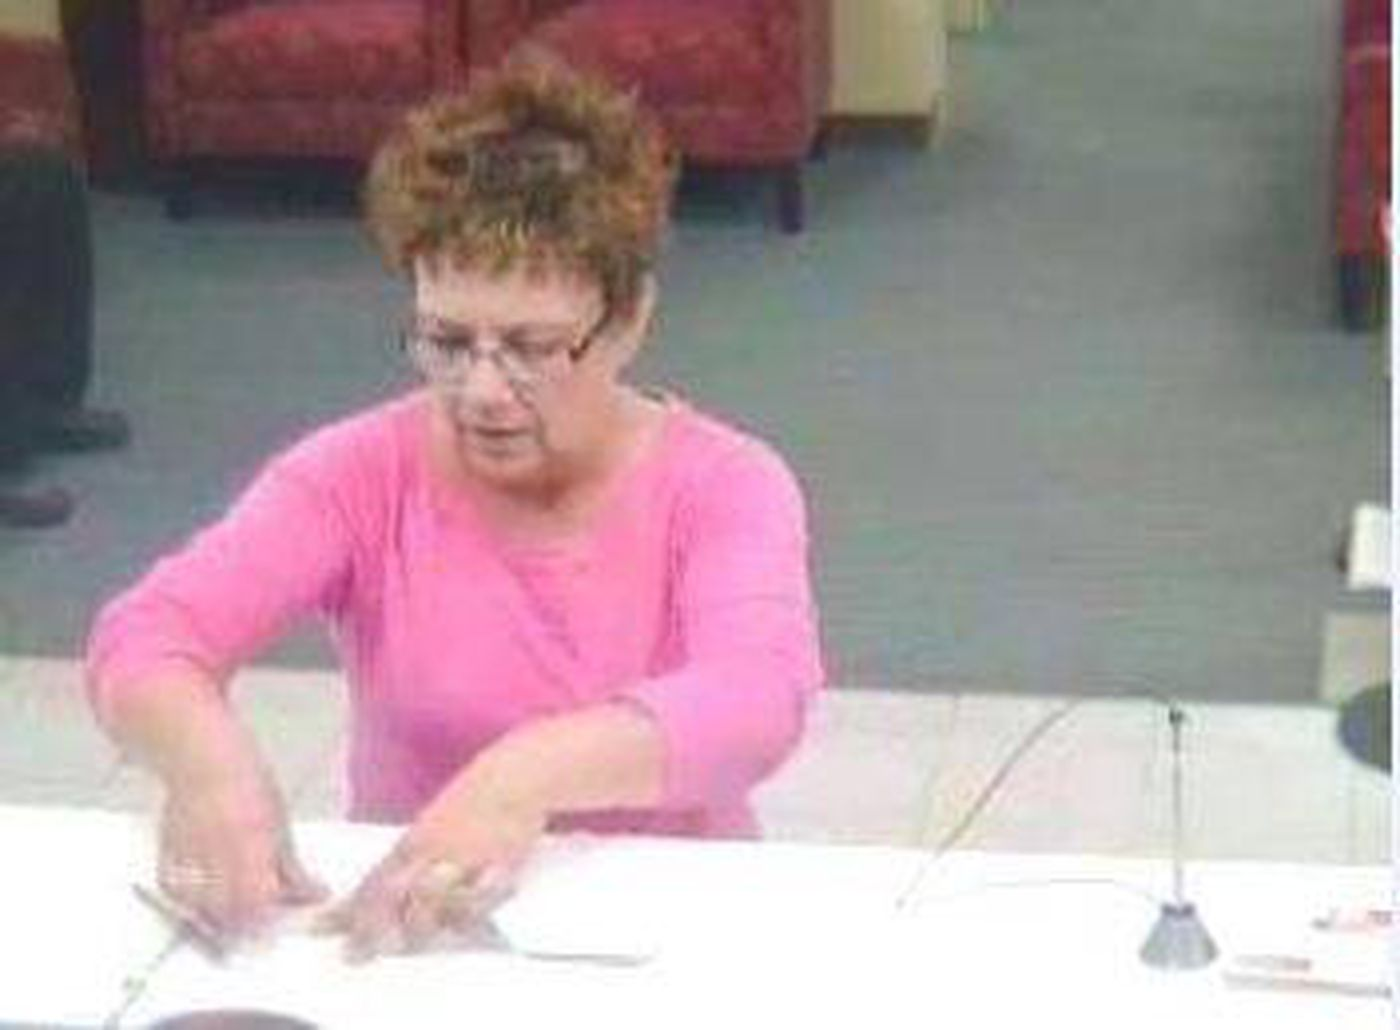 CPD: Woman altered stolen check, tried to cash it